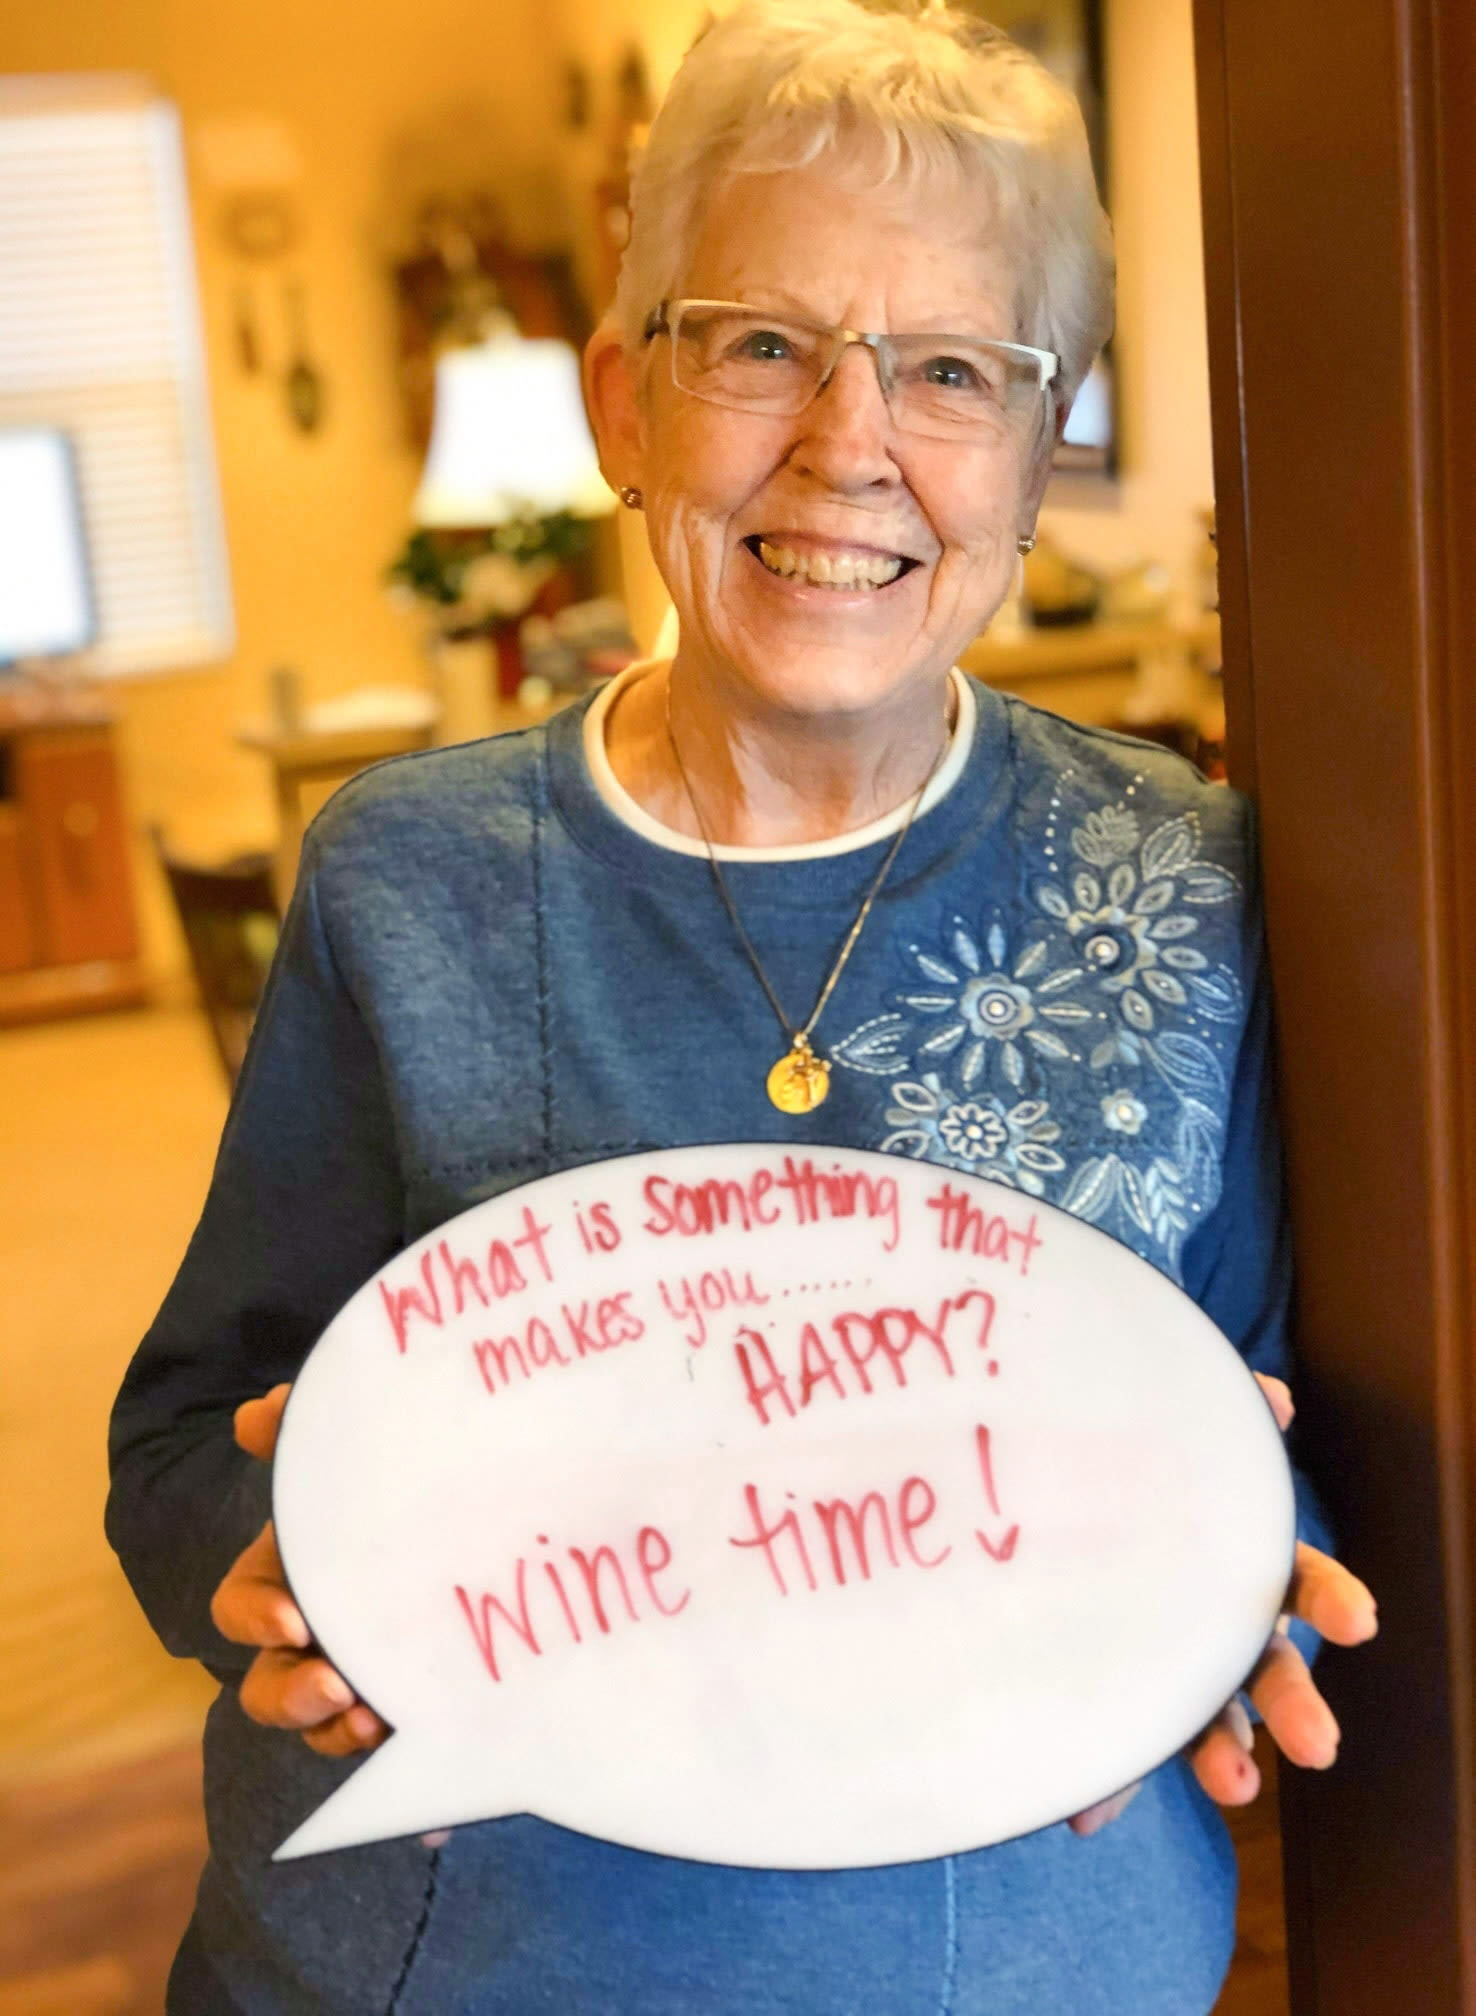 Resident holding a sign that says 'What makes you happy?: 'wine time!' at The Oxford Grand Assisted Living & Memory Care in Wichita, Kansas